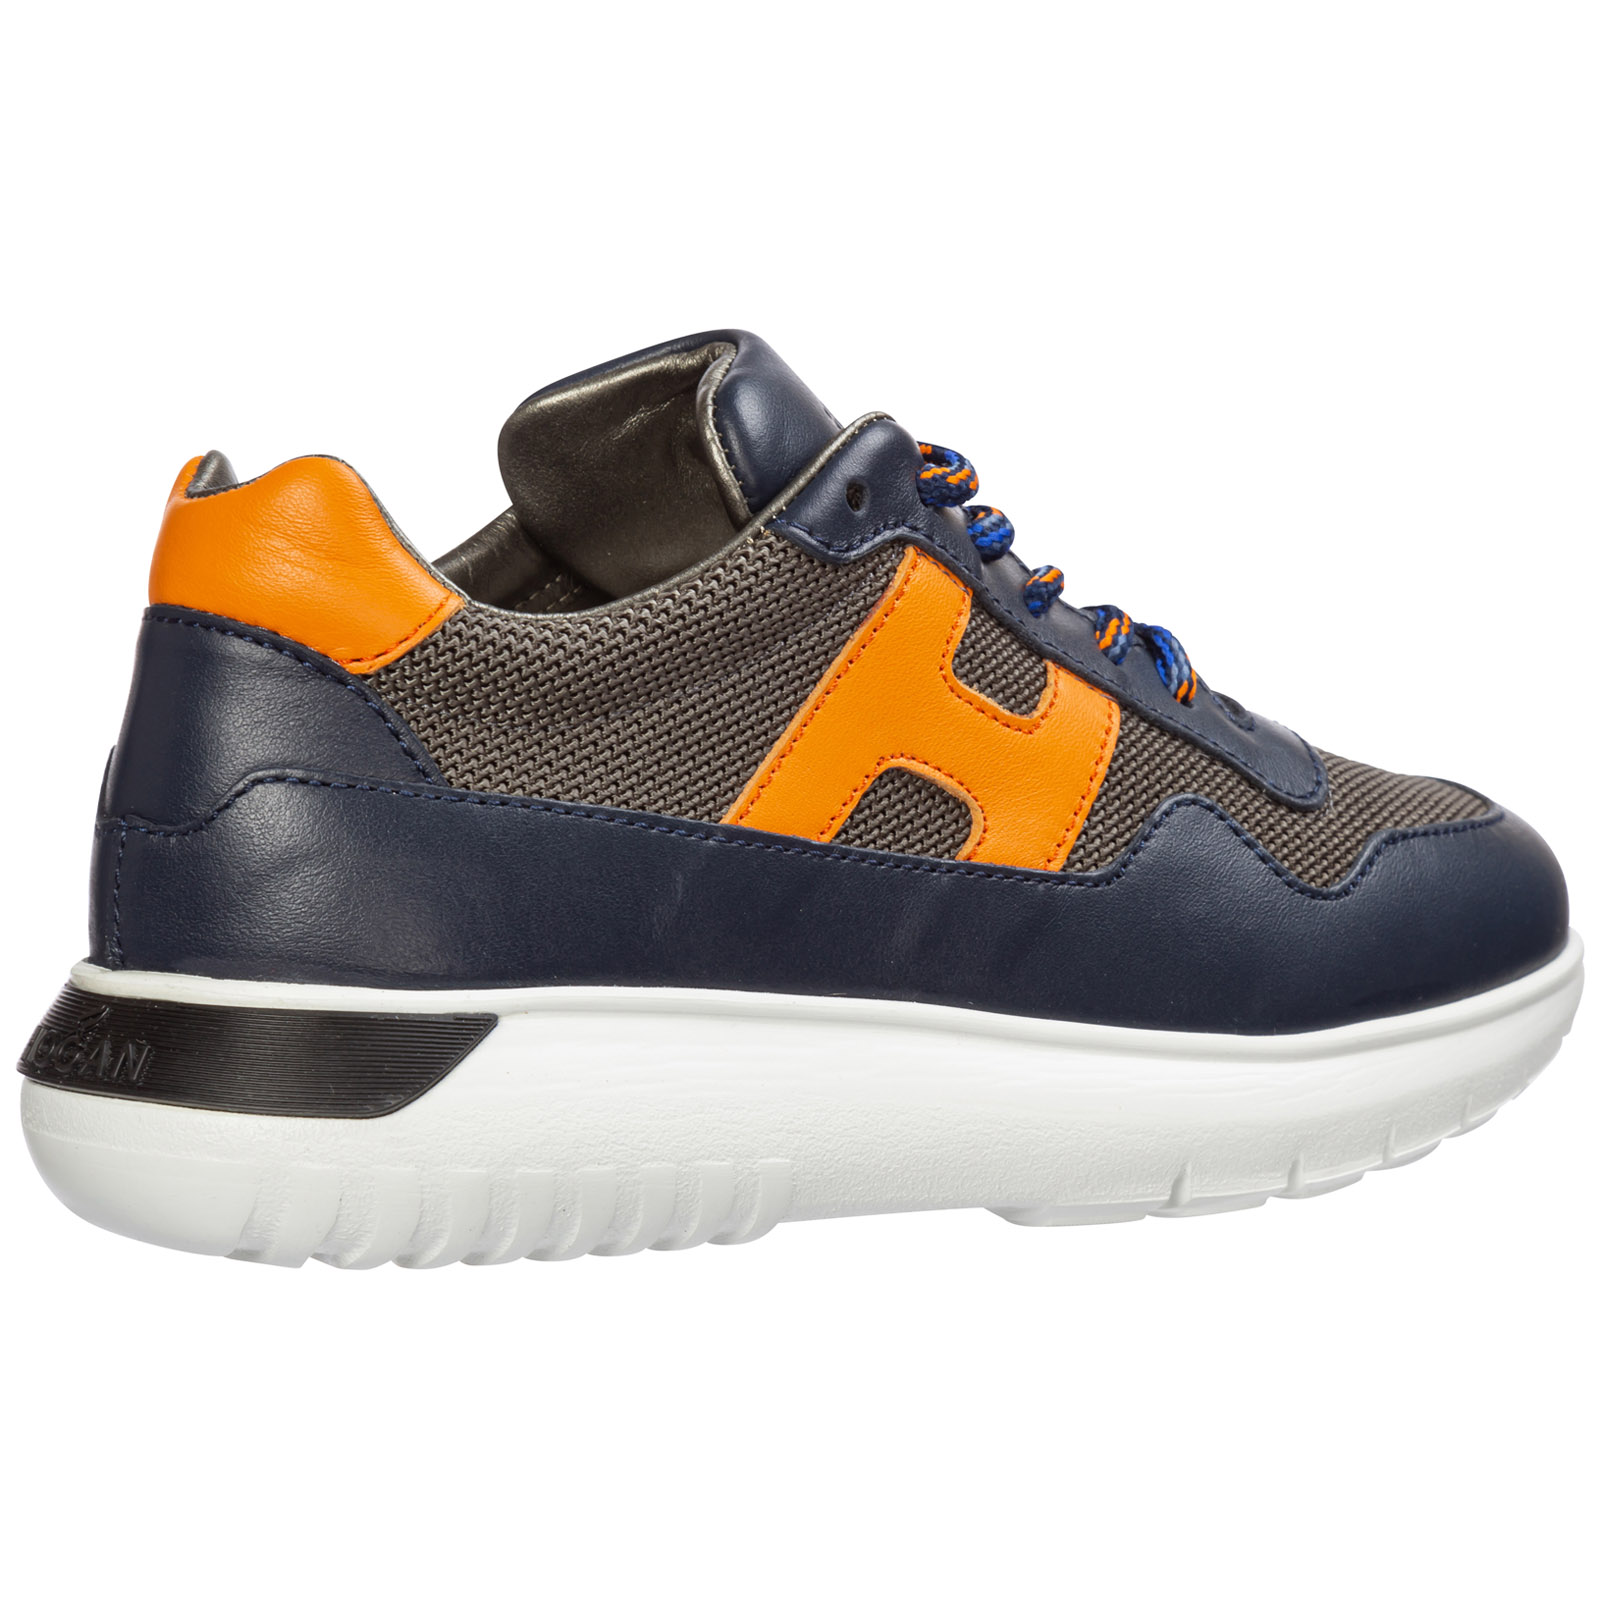 Boys shoes child sneakers leather interactive3